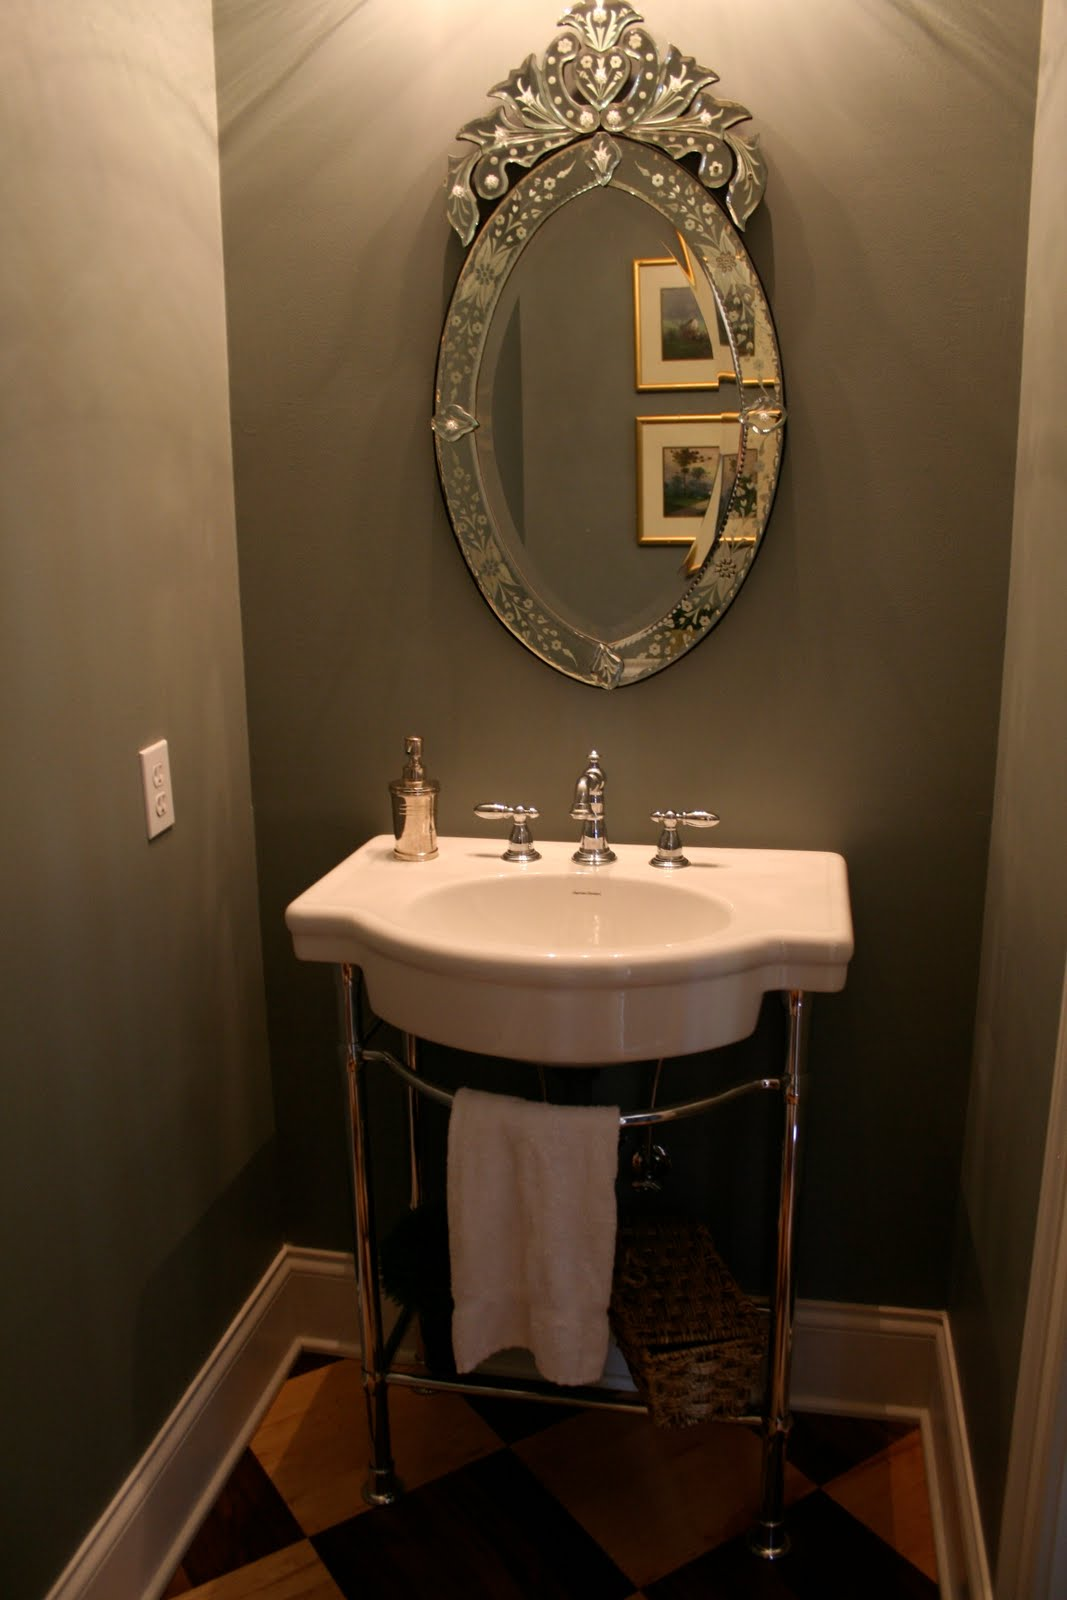 Design dump house 5 powder room before after Mirror design for small bathroom